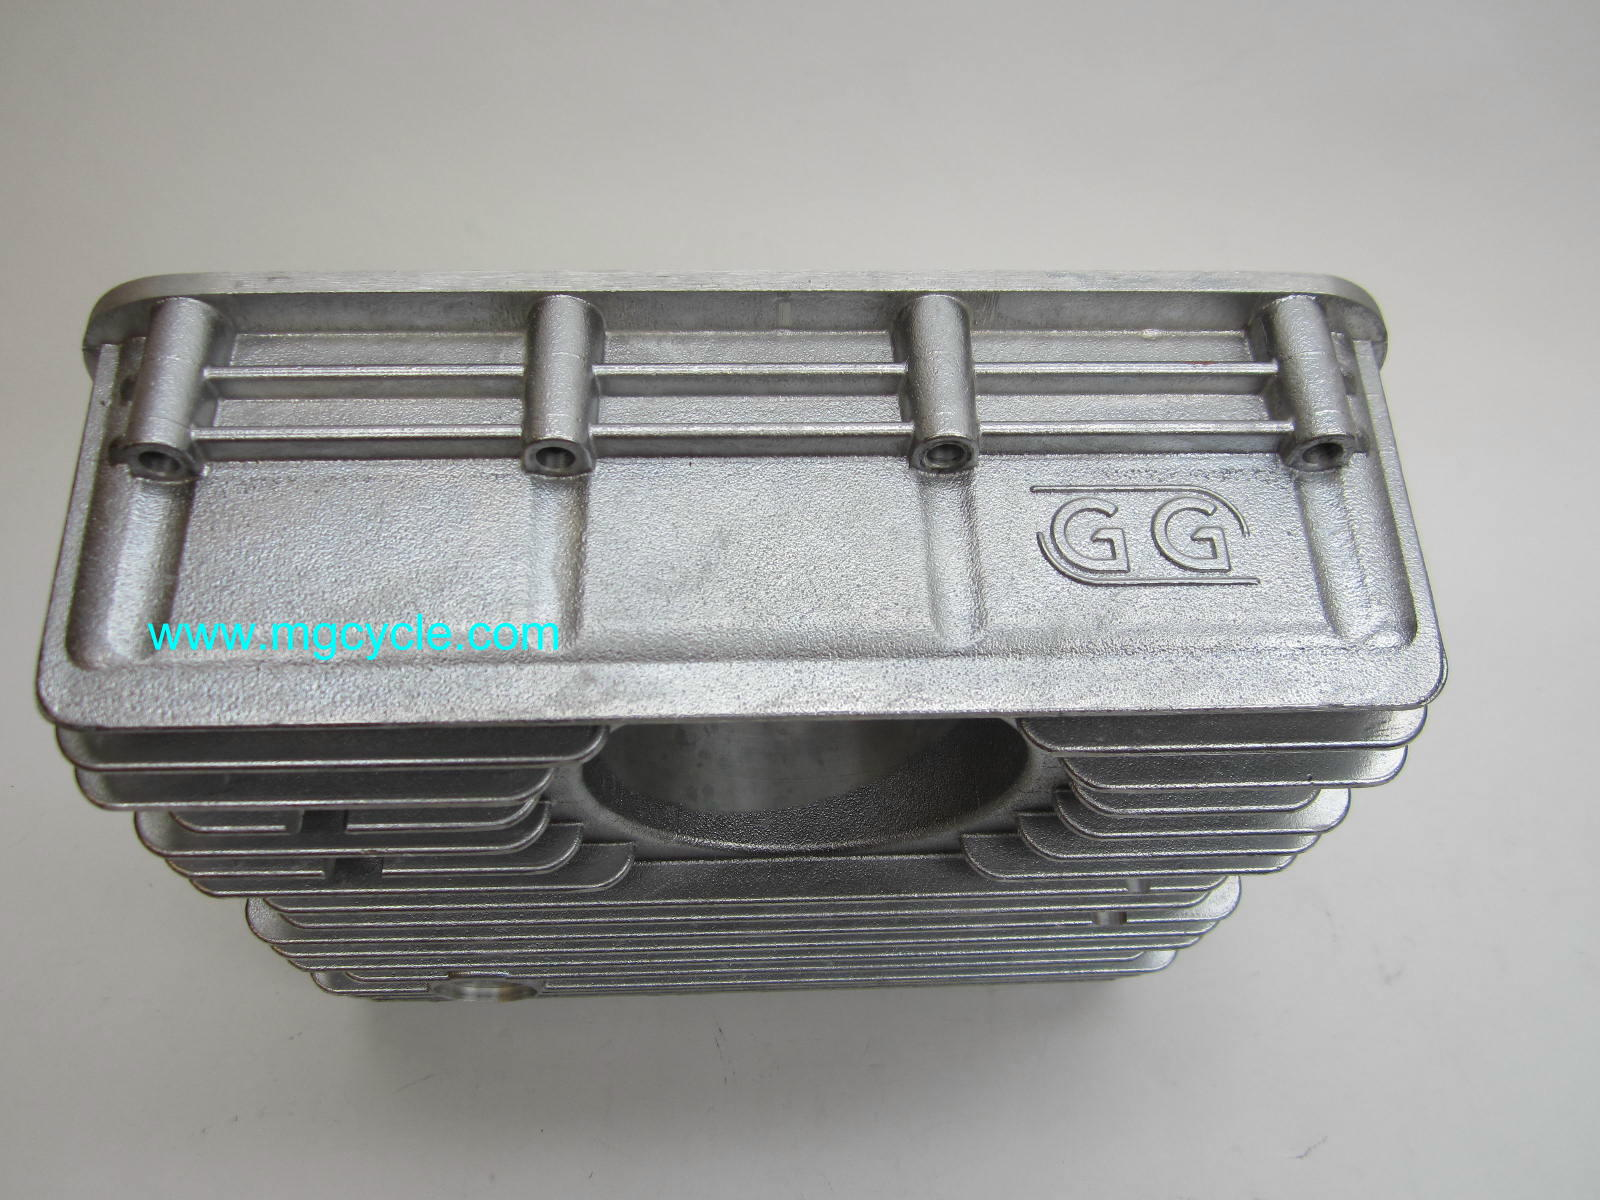 G&G deep sump with recessed external oil filter